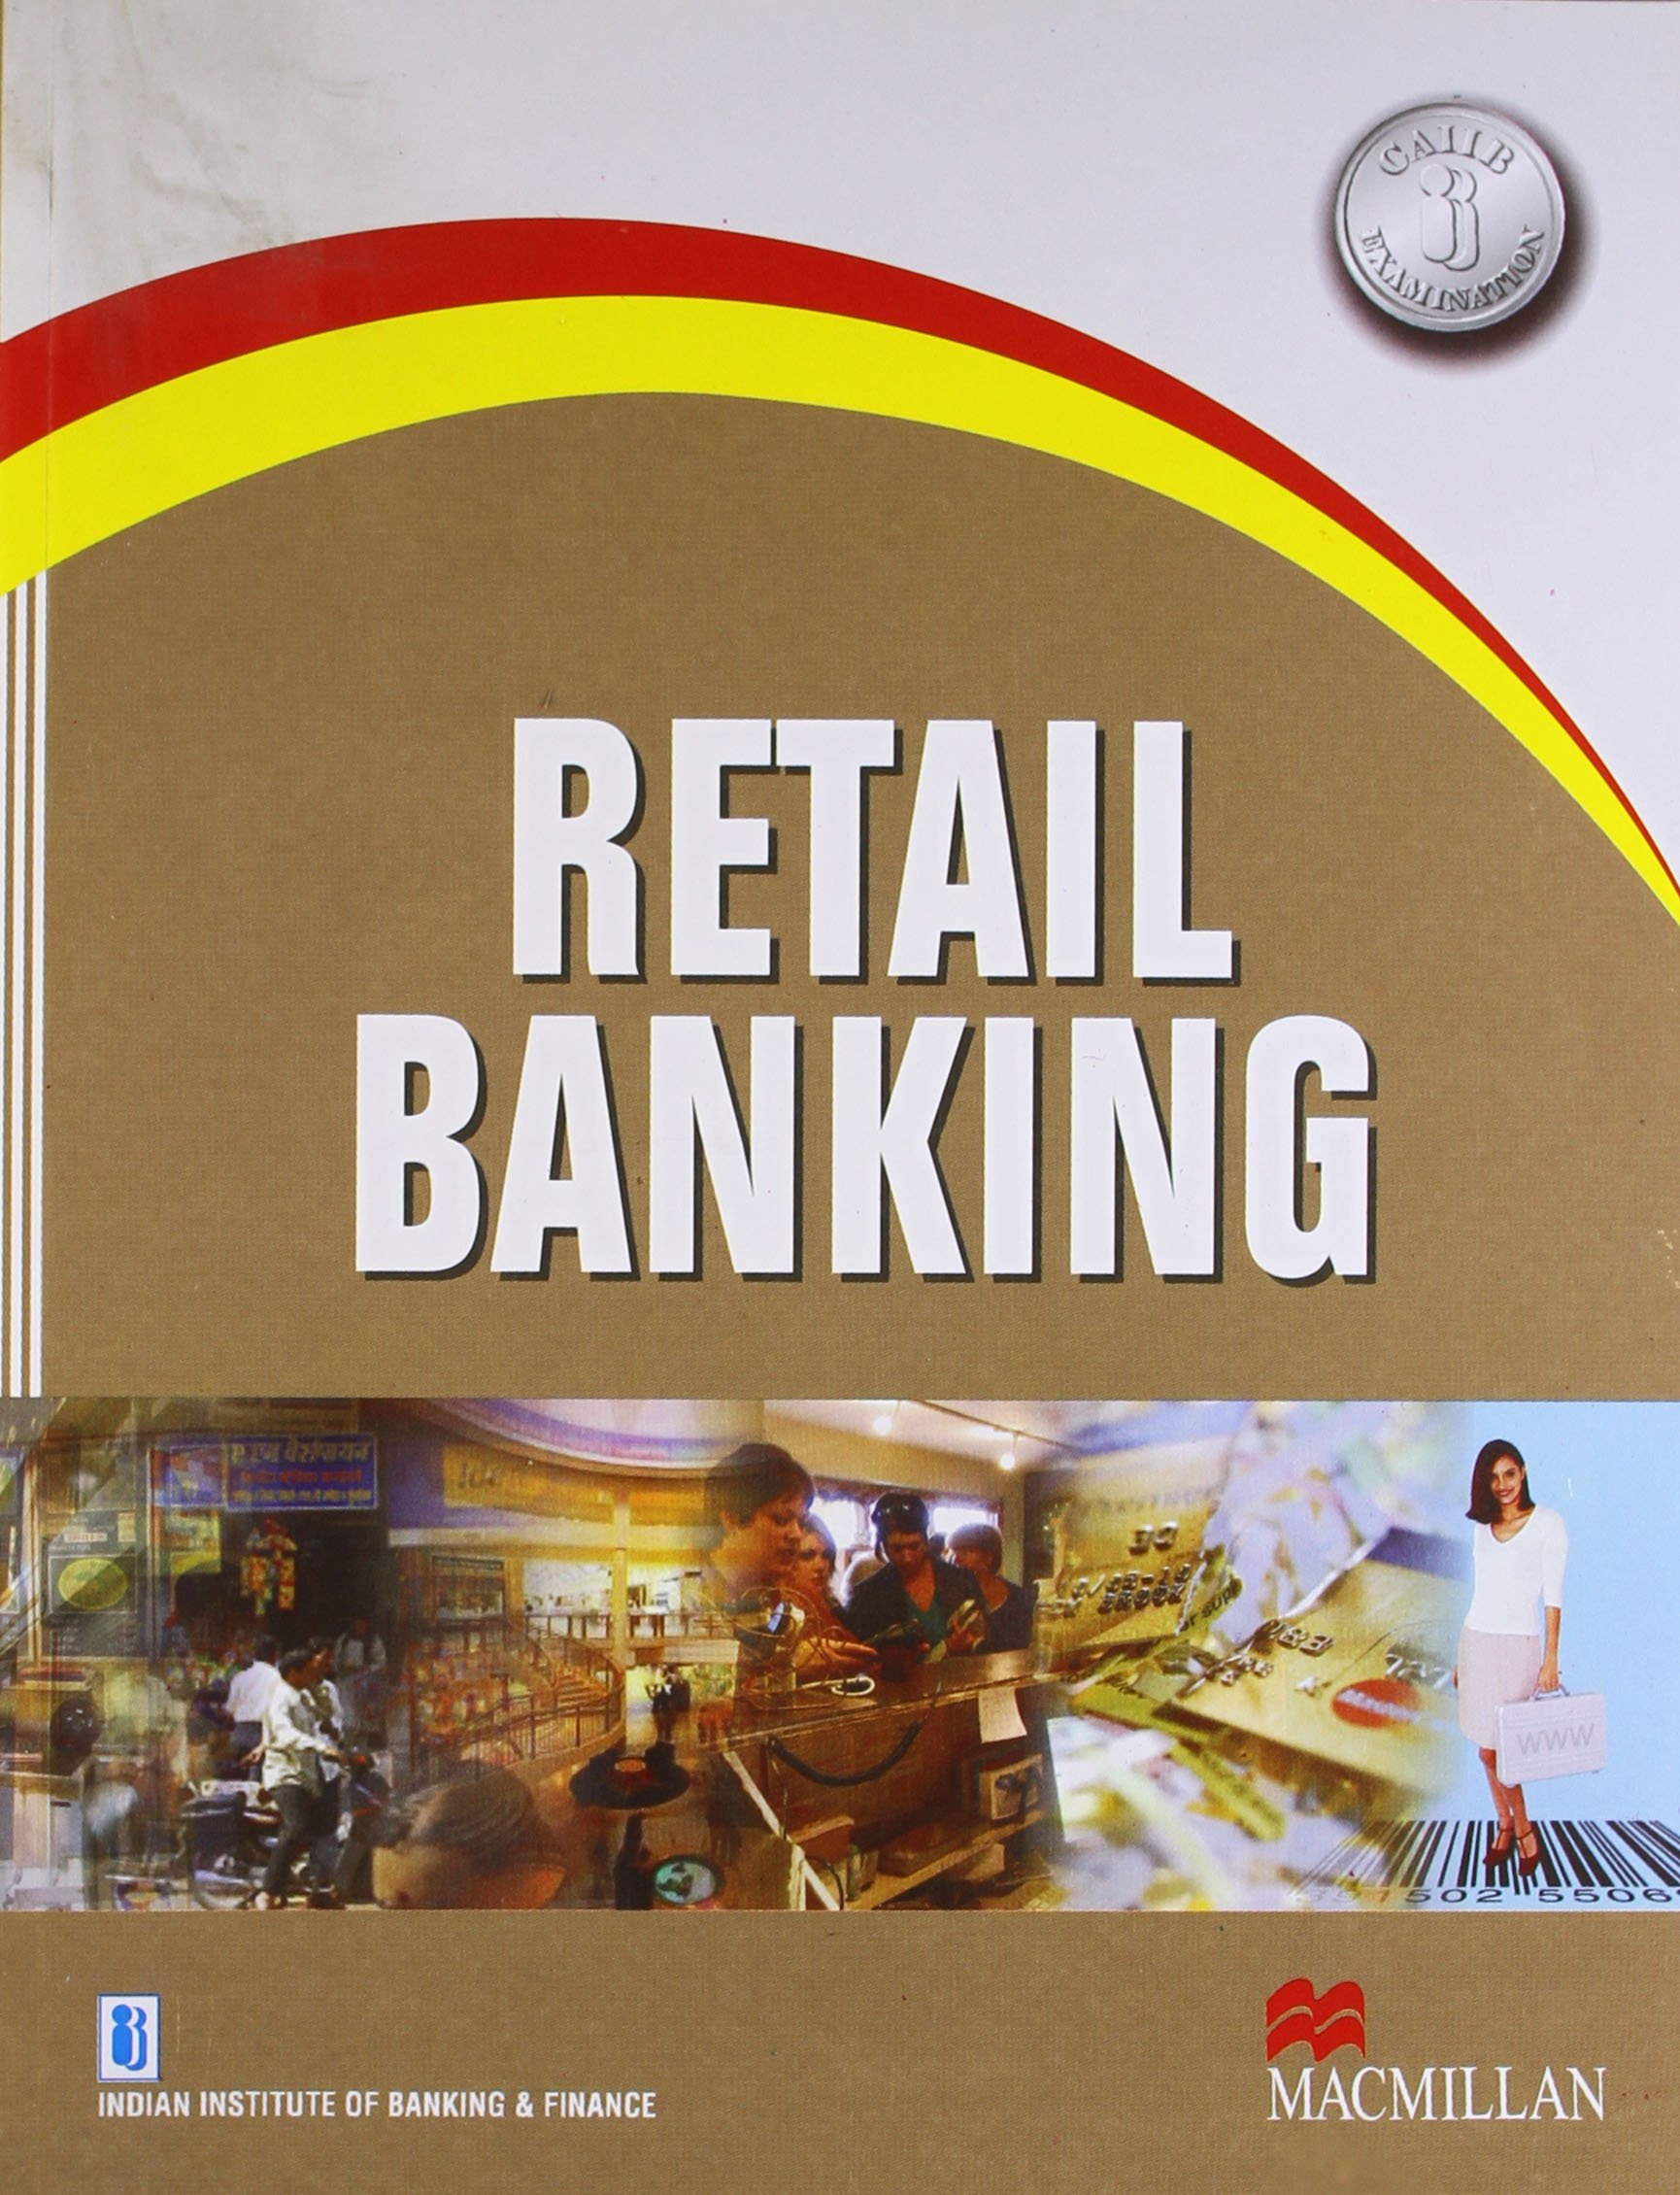 Retail banking for caiib examination amazon iibf indian retail banking for caiib examination amazon iibf indian institute of banking and finance books fandeluxe Image collections